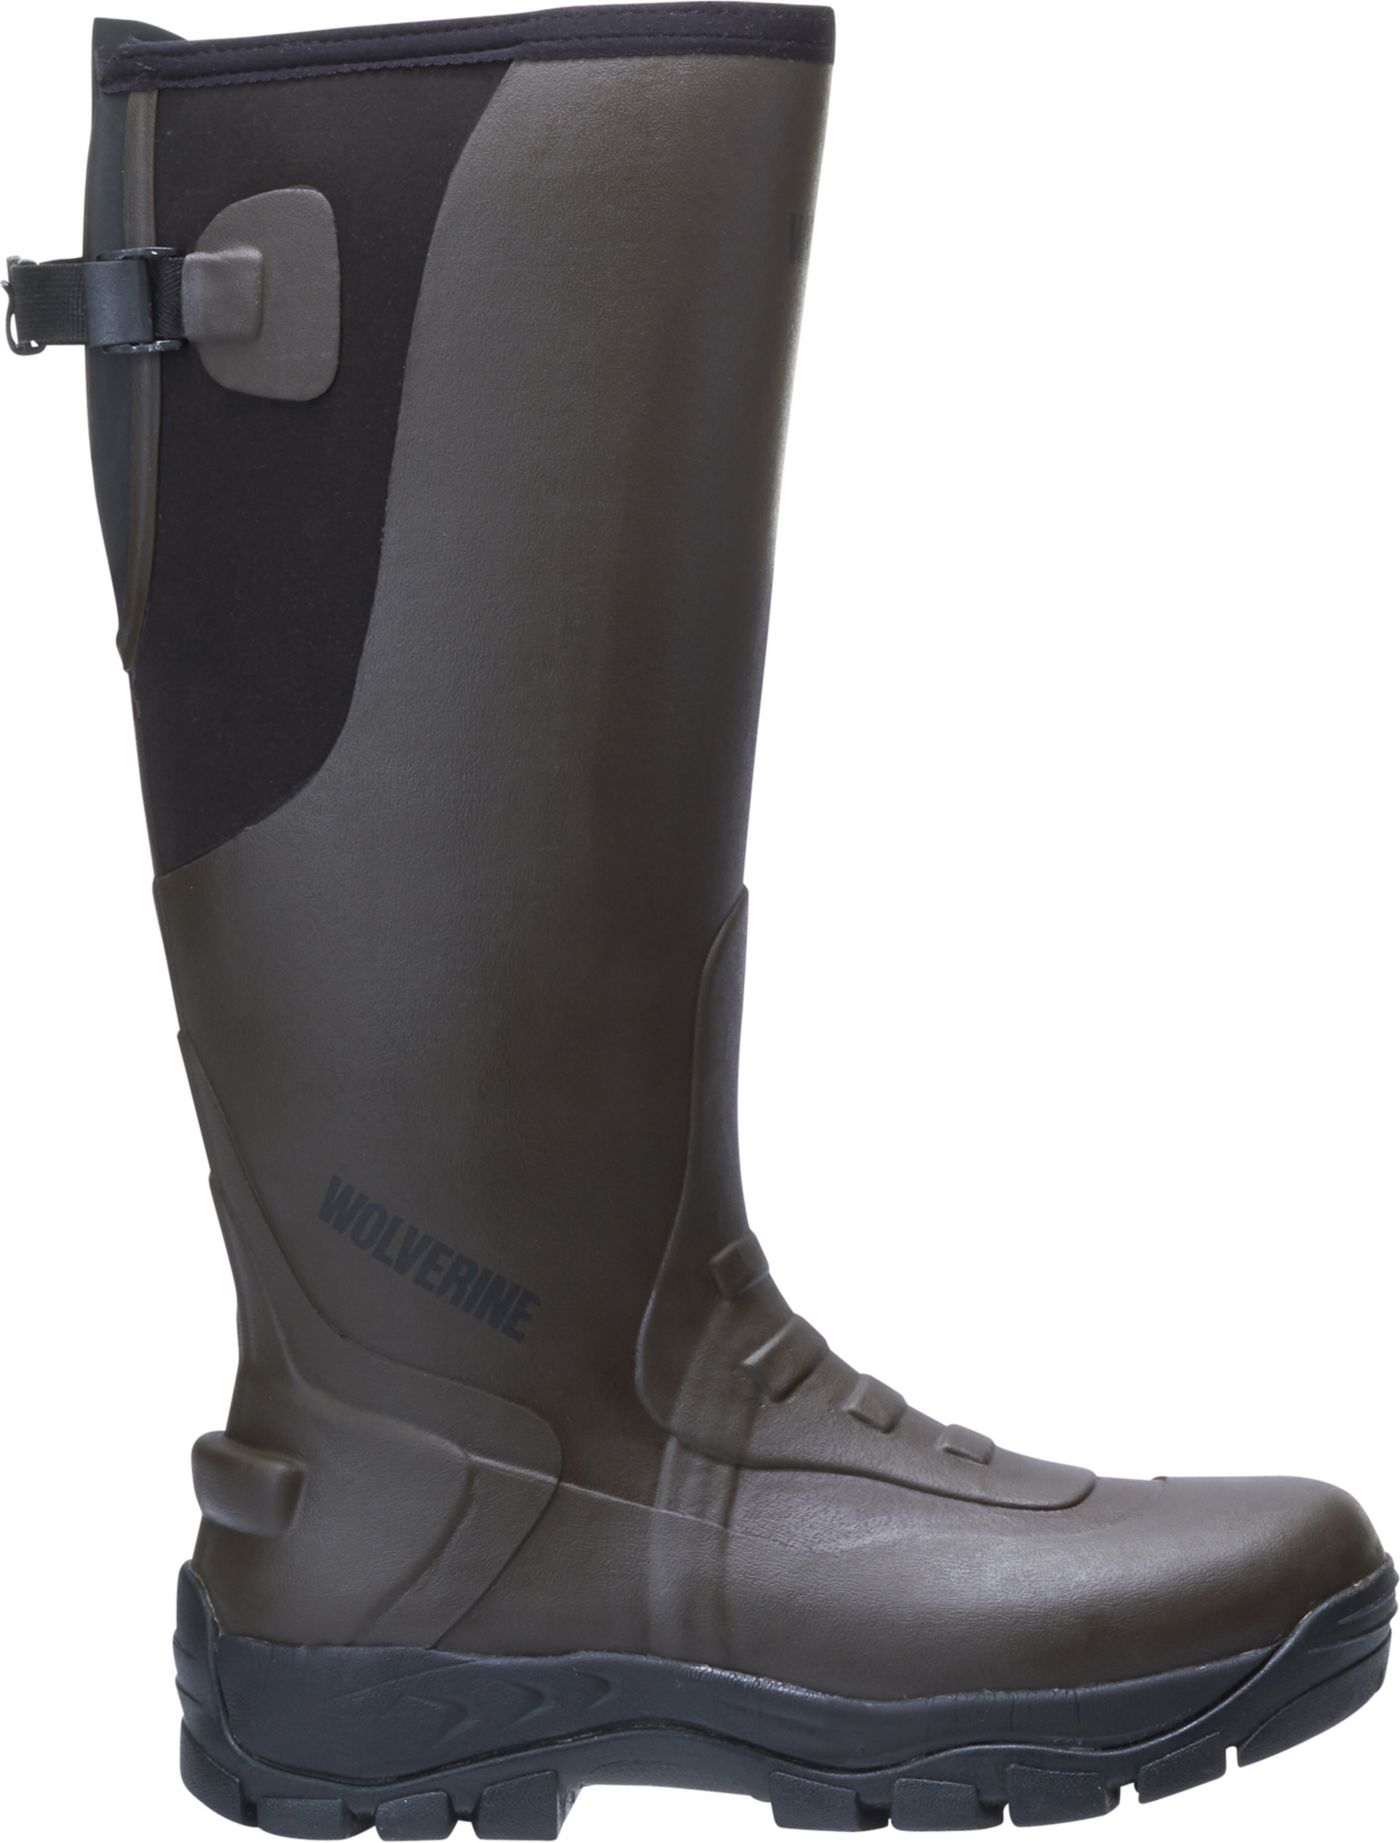 Wolverine Men's Marsh Insulated Rubber Hunting Boots